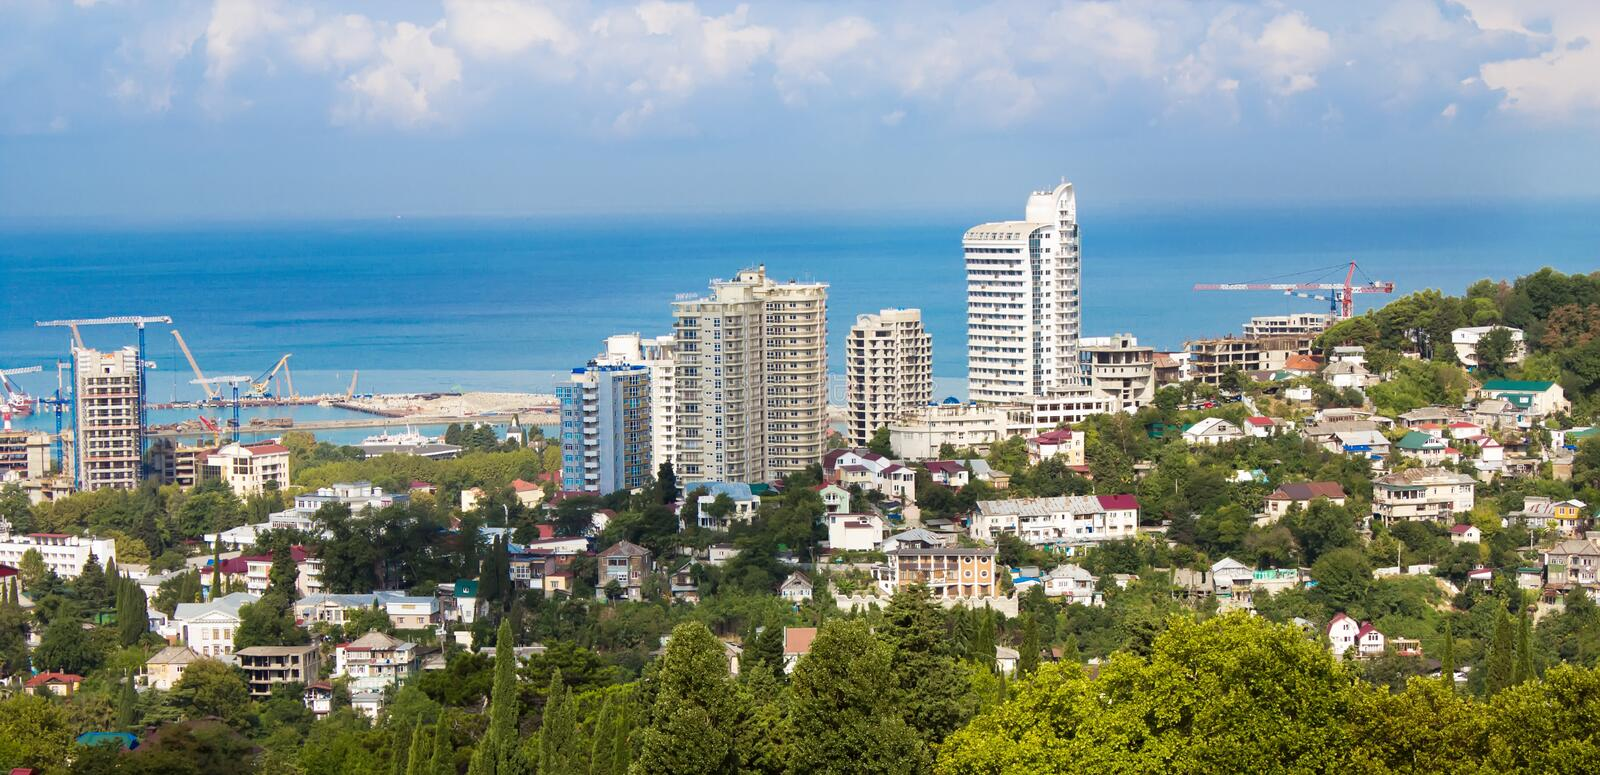 Panoramic view of the construction site of Sochi royalty free stock image